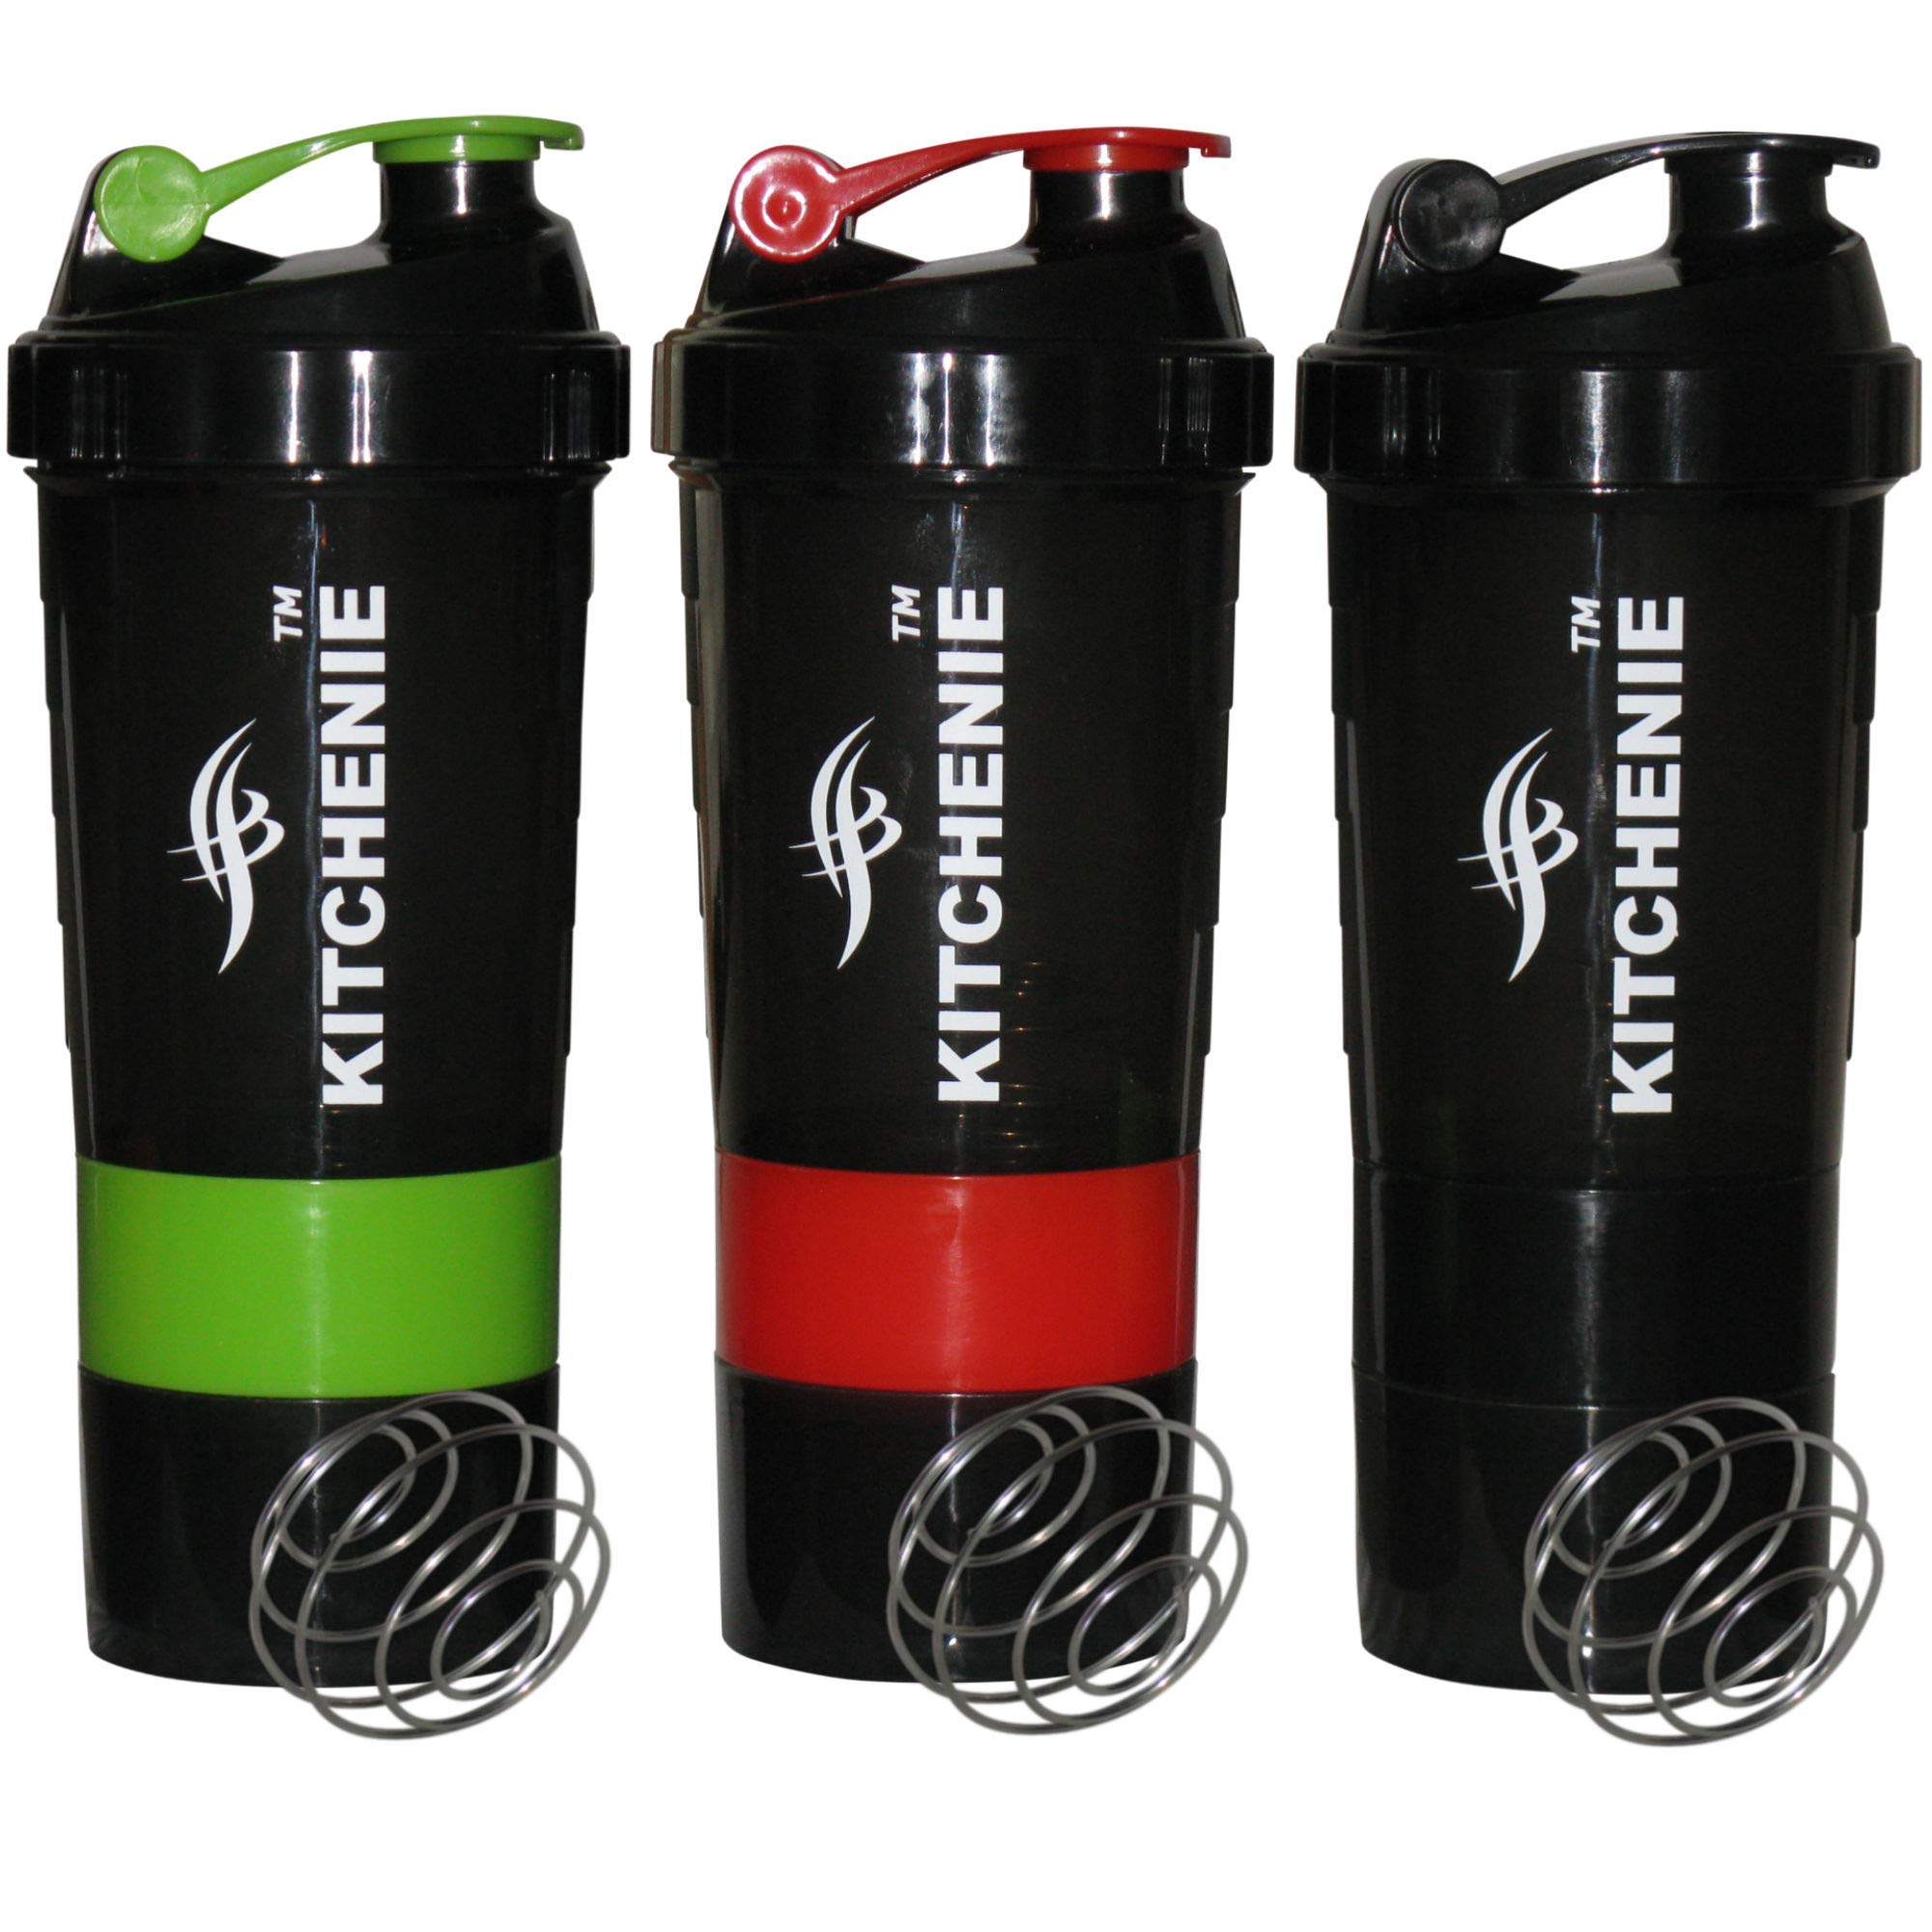 Protein Shaker Bottle BPA Free-3 Pack-Easy Grip-Leak Proof Flip Cap-Stainless Steel Ice Shaker Ball, 20 Oz Drink Shaker Cup, +2 Twist-on Cups on Each Bottom for Powder & Capsule Organizer by KITCHENIE